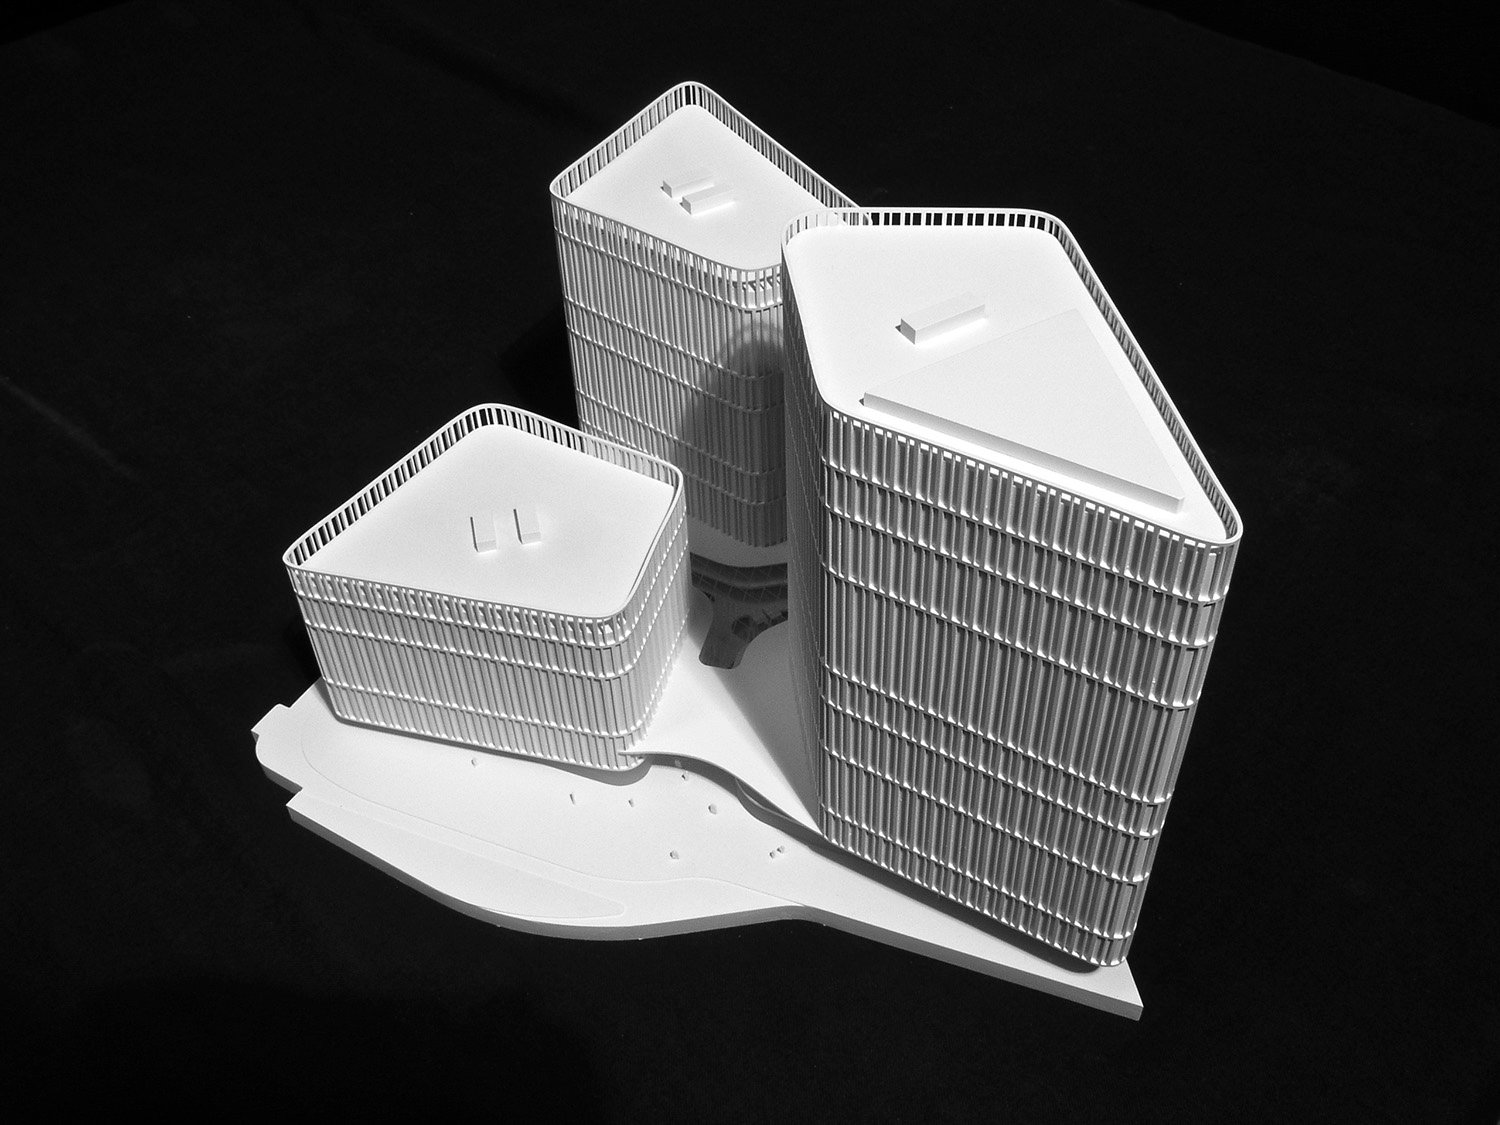 THE ICON / Model BEHF Architects}